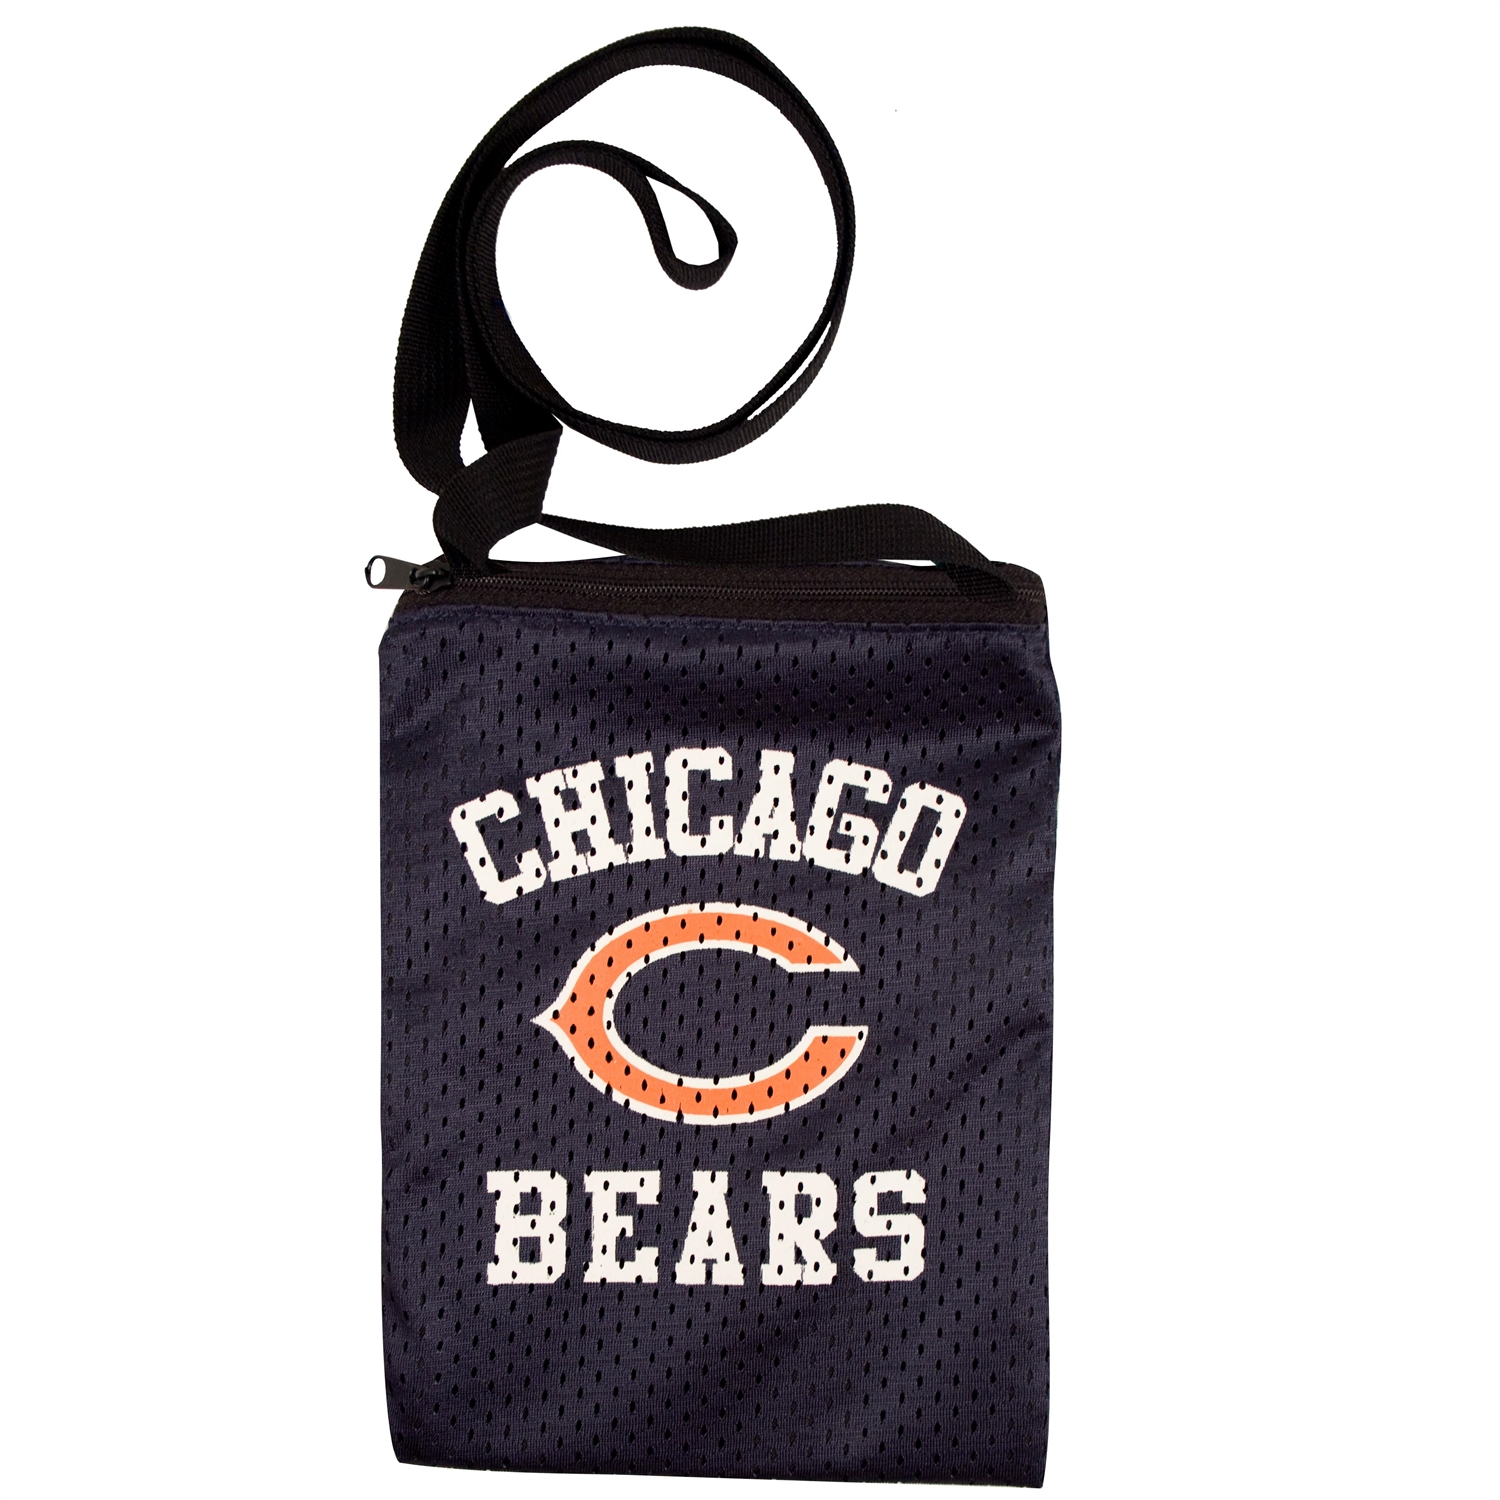 Nfl Football Chicago Bears Toys Games Puzzles Games - 300103-bear - Chicago Bears Game Day Pouch 300103-BEAR